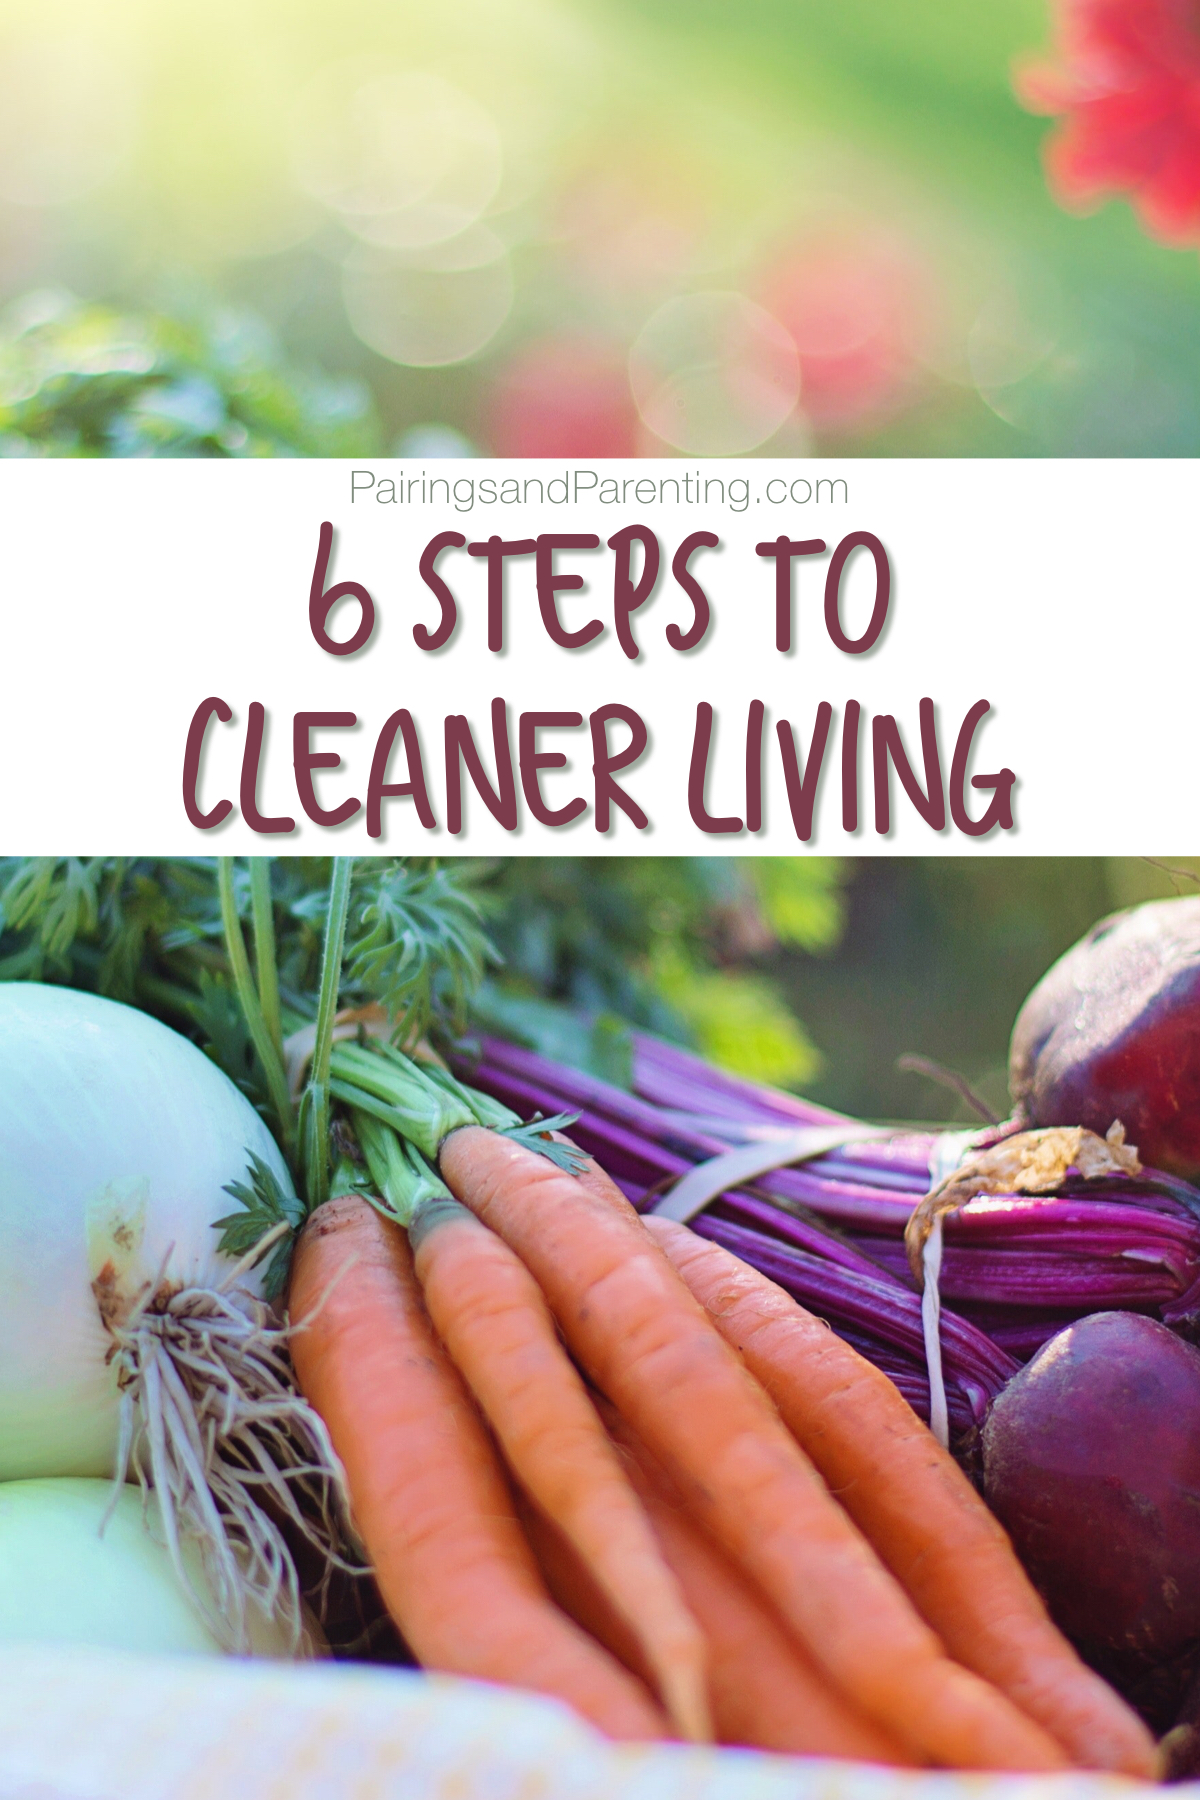 6 Steps For Cleaner Living and Organic Eating